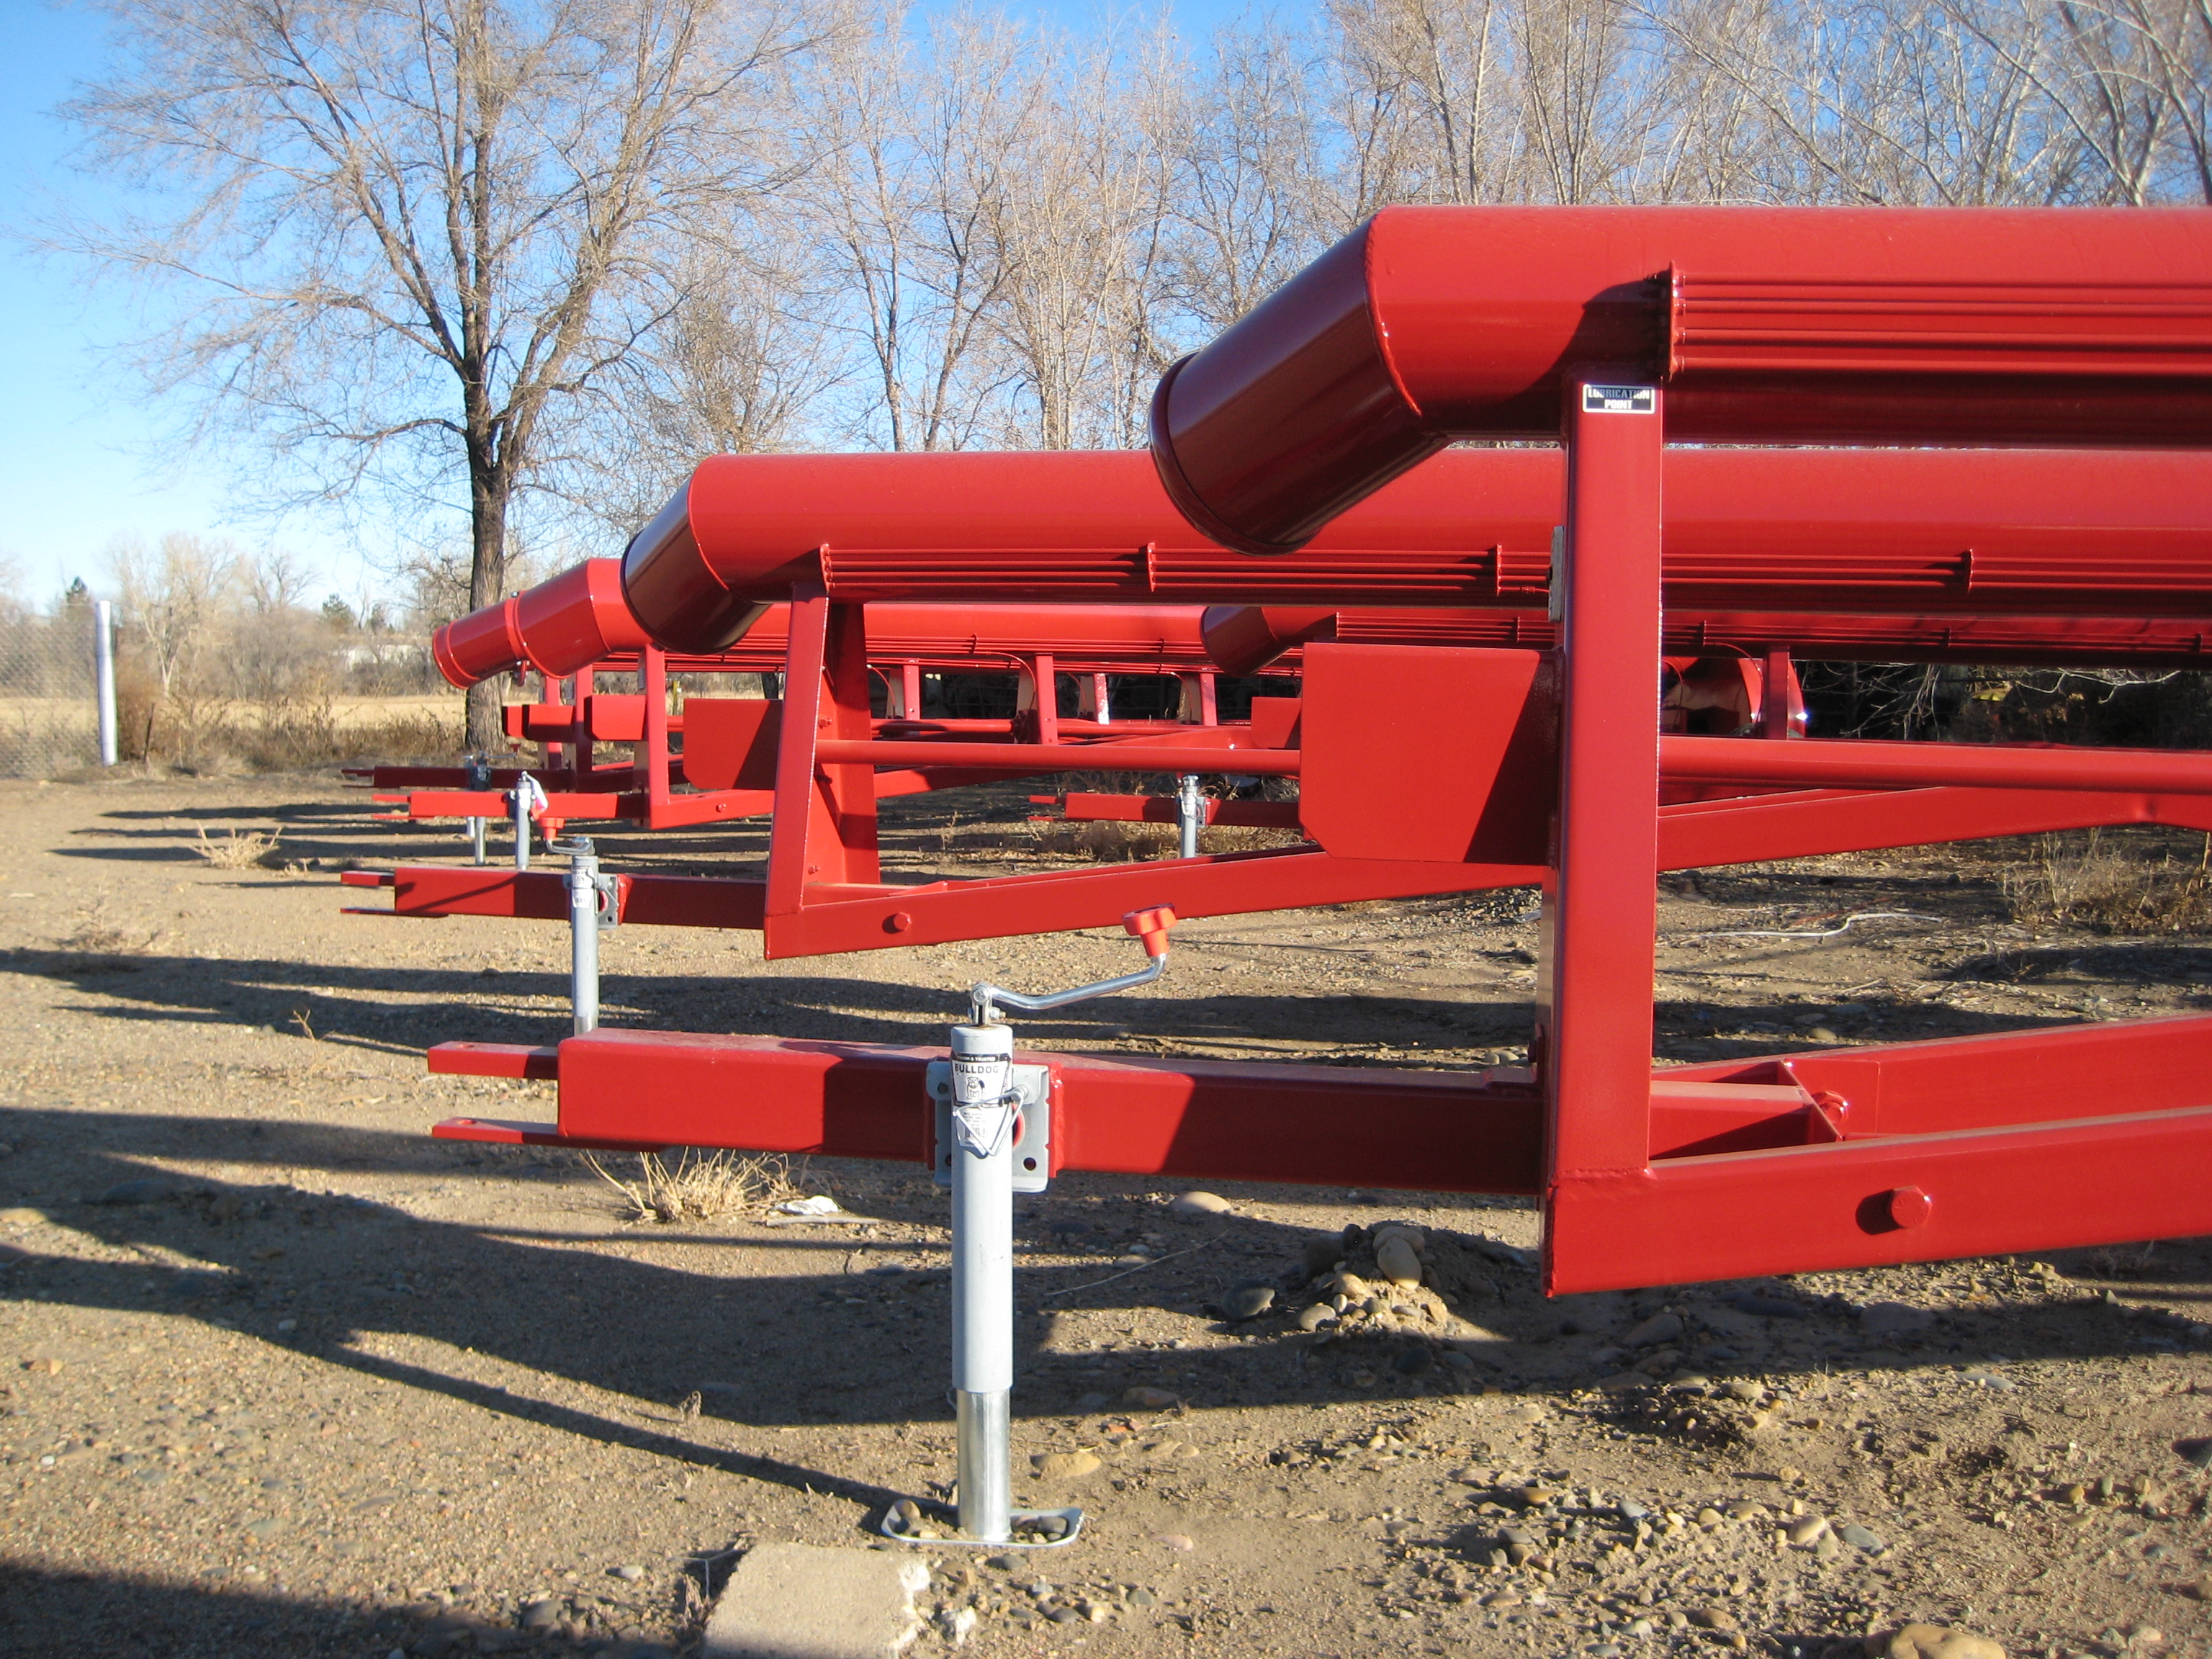 Trailer pumps